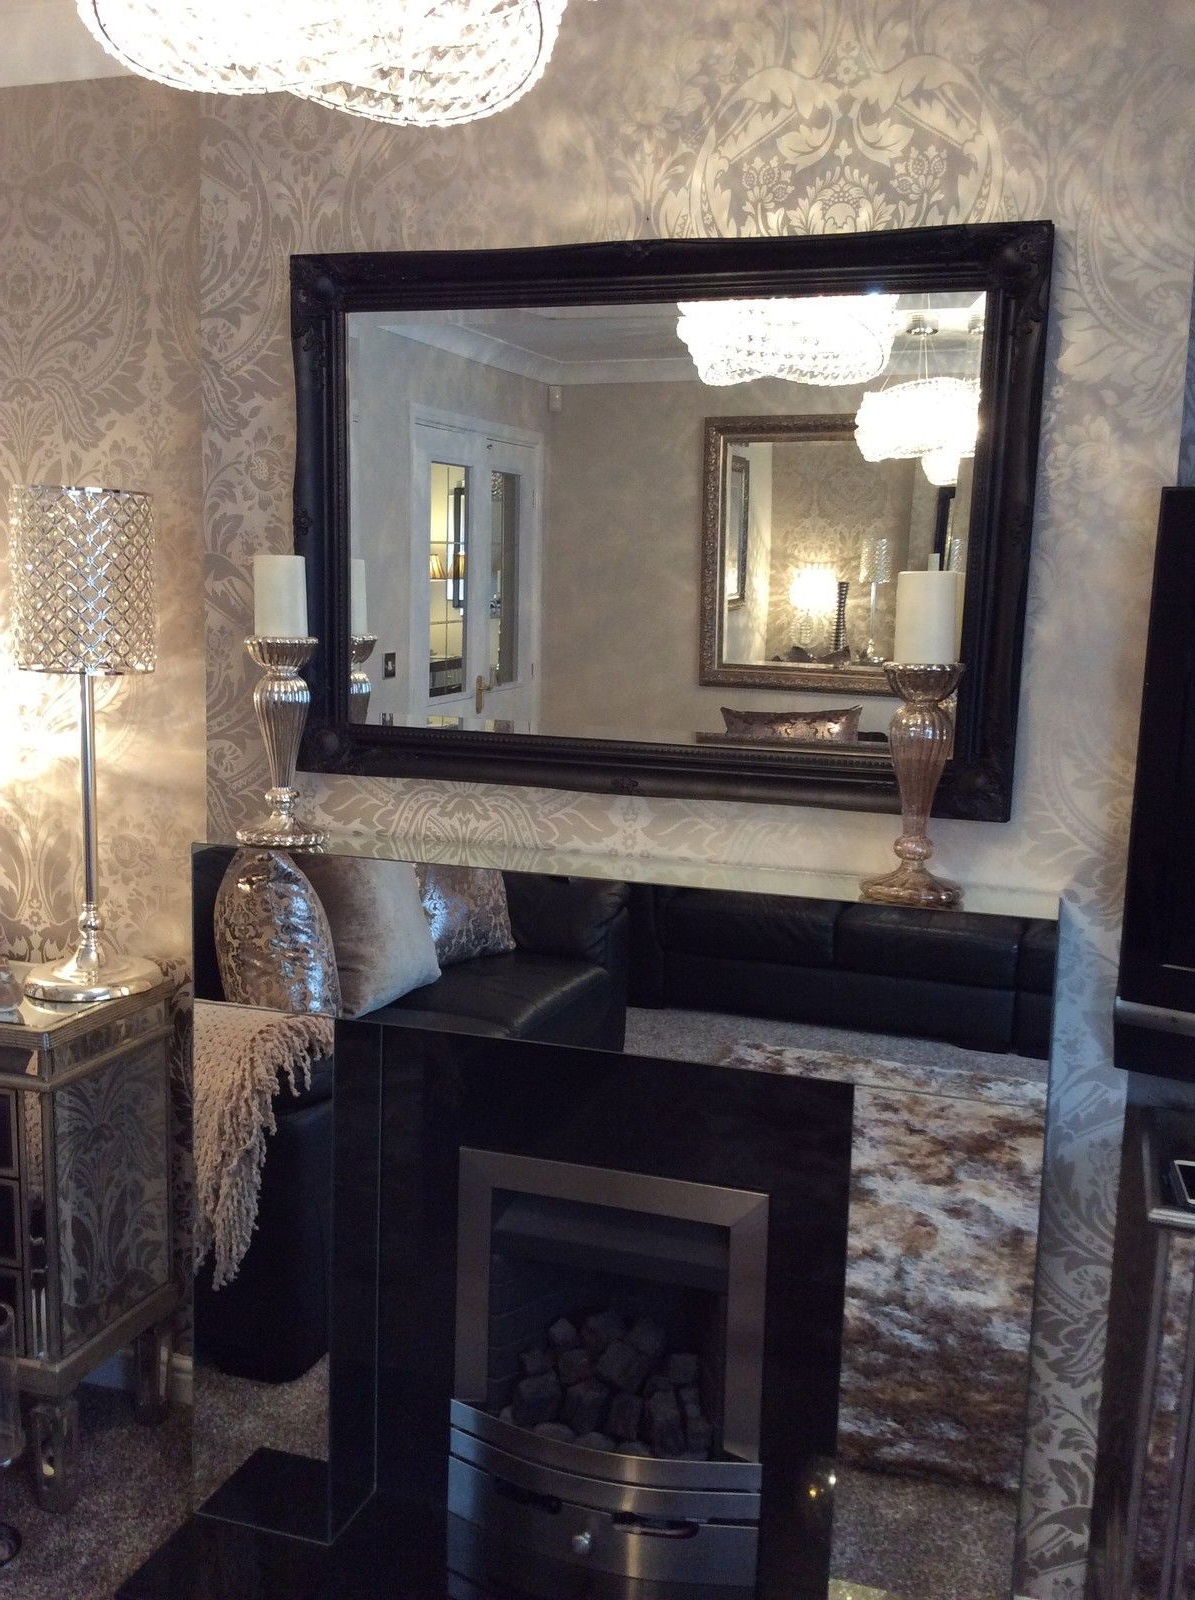 Well Known Large Glass Bevelled Wall Mirrors Regarding Large Black Stunning Decorative Swept Wall Mirror – Bevelled Glass *new* (View 20 of 20)